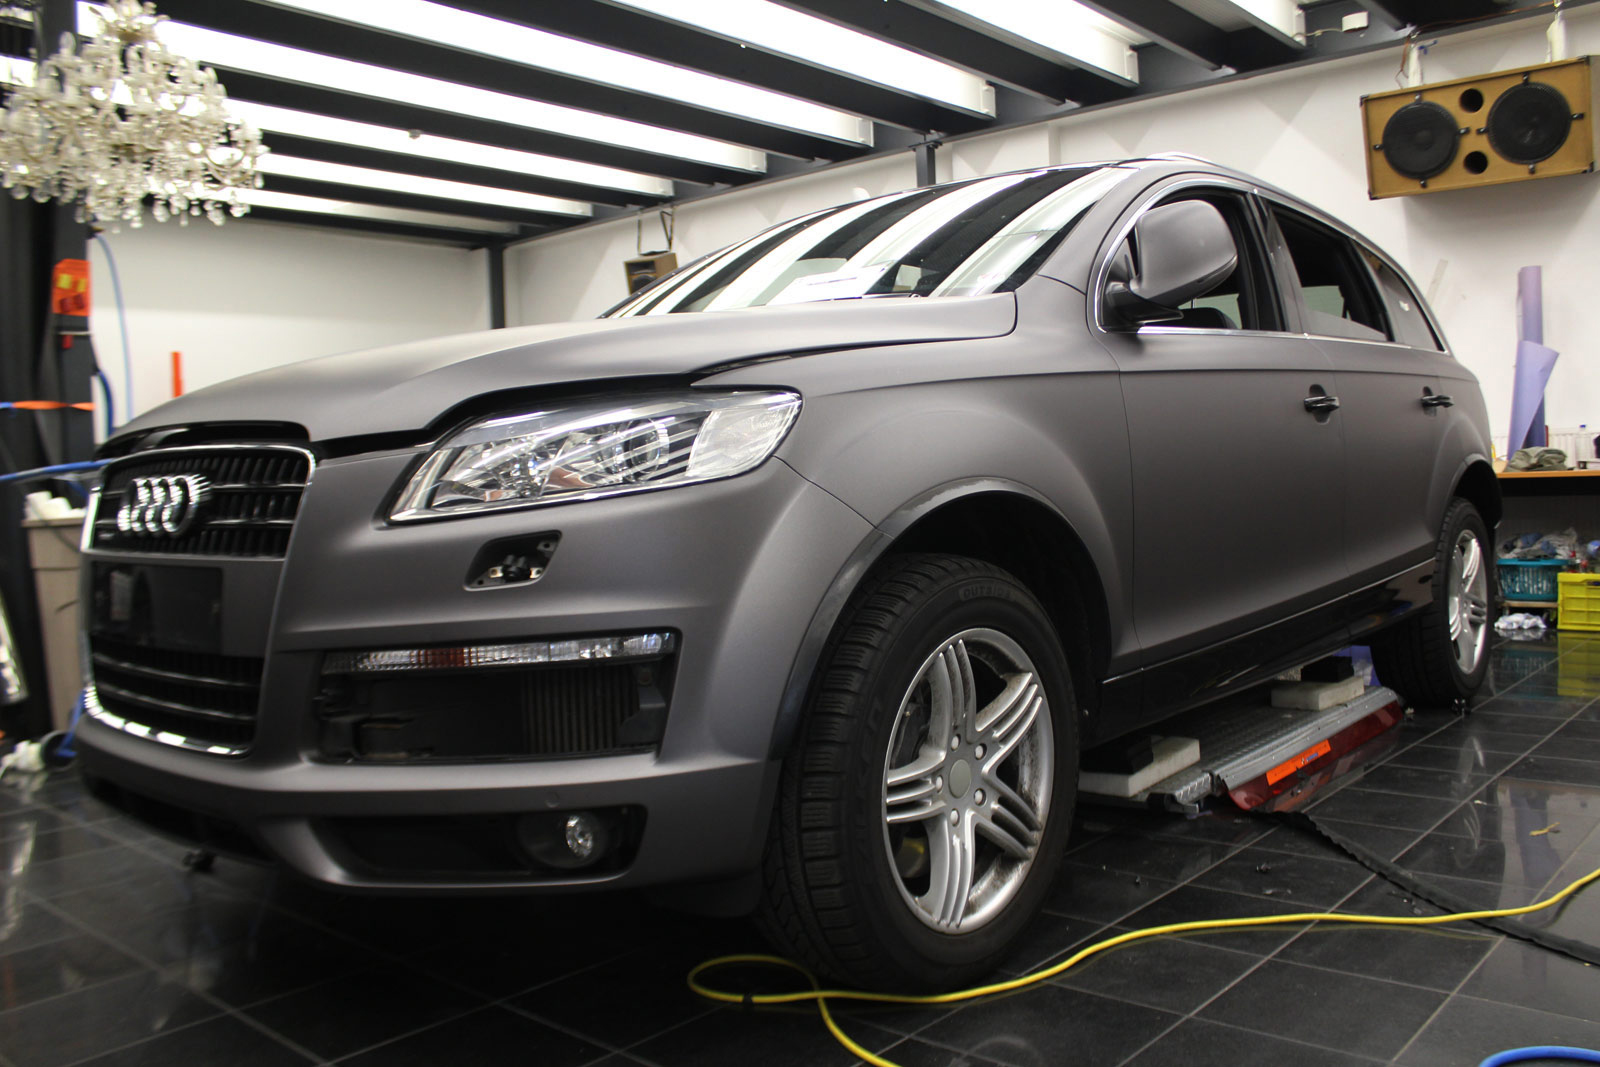 AUDI_Q7_ANTHRAZIT_MATT_METALLIC_01